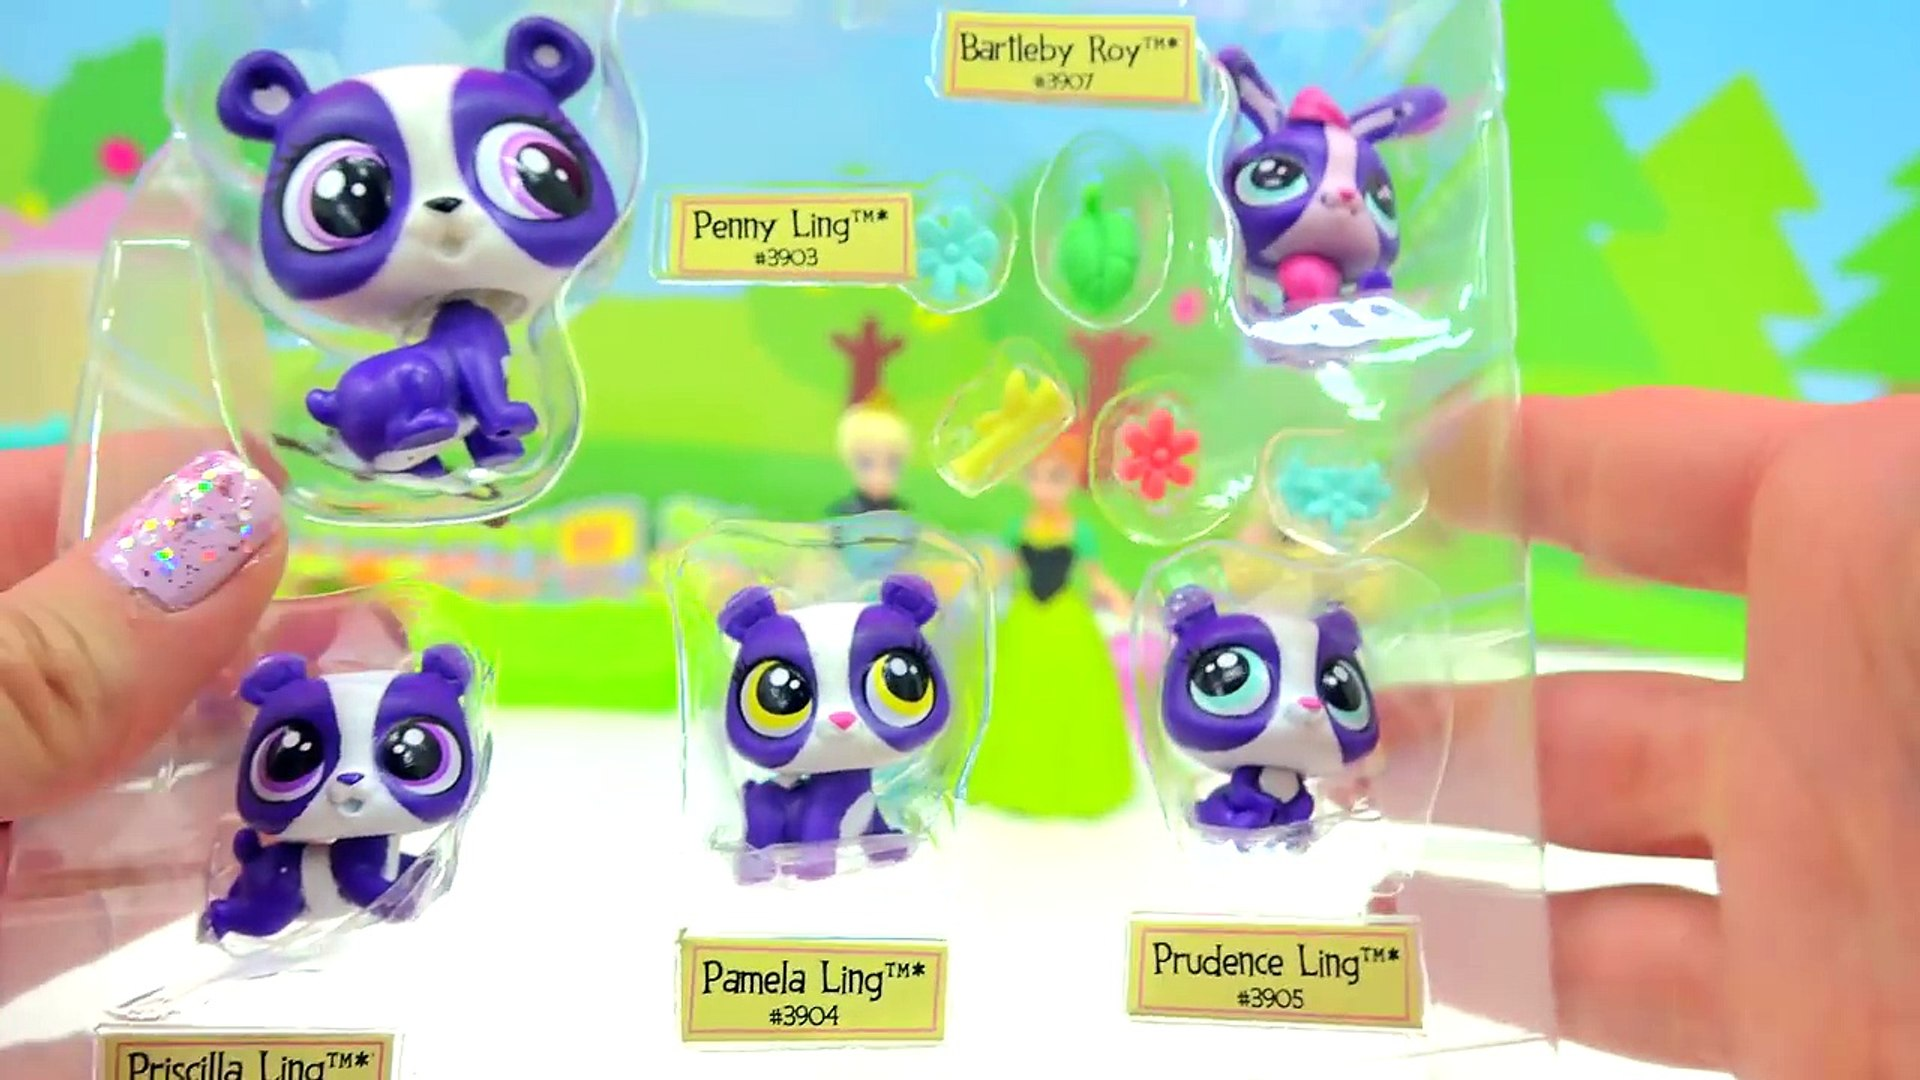 Mom and Babies Surprise Families Littlest Pet Shop Playset - Cookieswirlc LPS Video-WoETIagVtrM